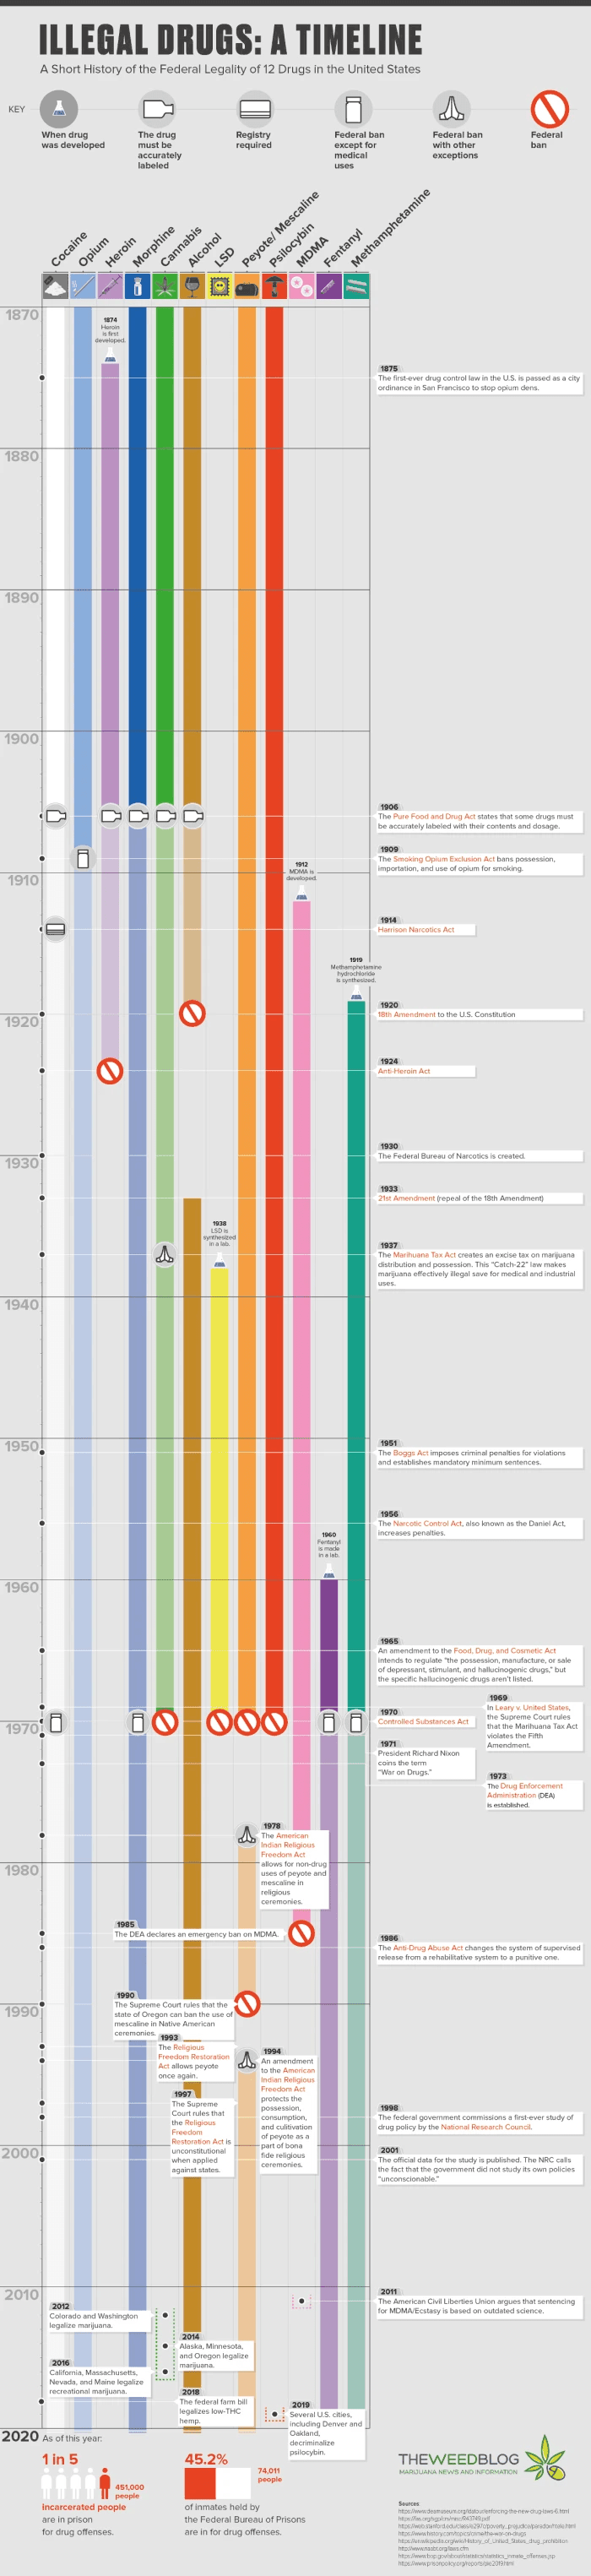 A Timeline of the Federal Legality of 12 Drugs in the United States